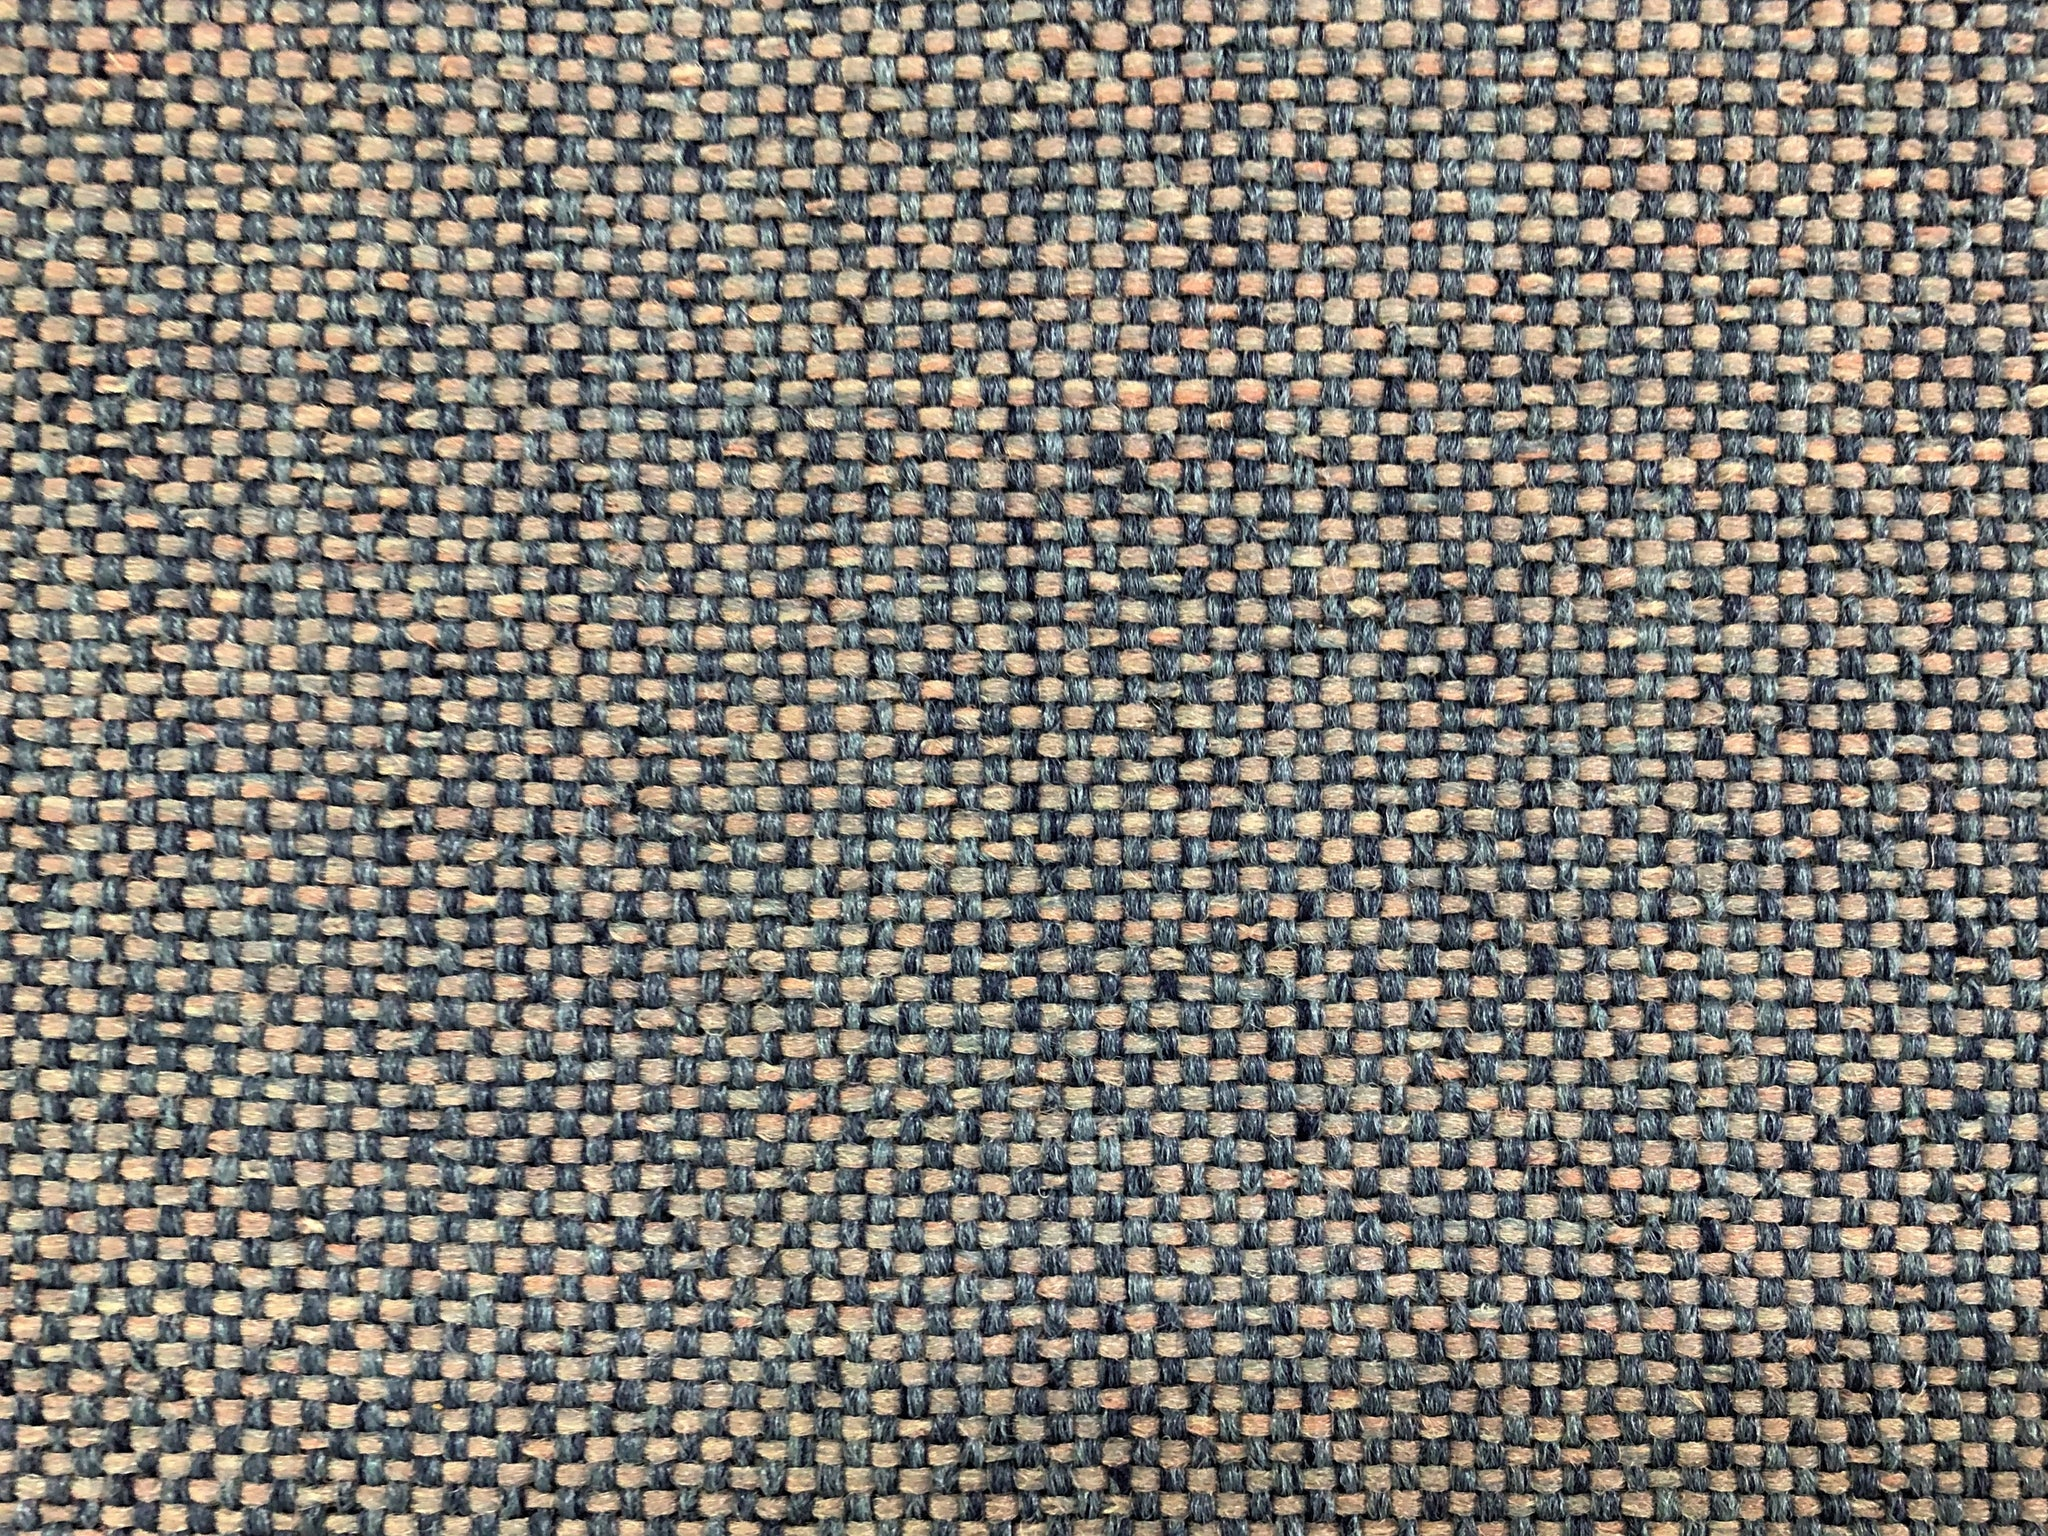 Mid Century Denim Blue Tweed Uphy Fabric Fabric Bistro Columbia South Carolina,How To Make A Candle Wick Stay